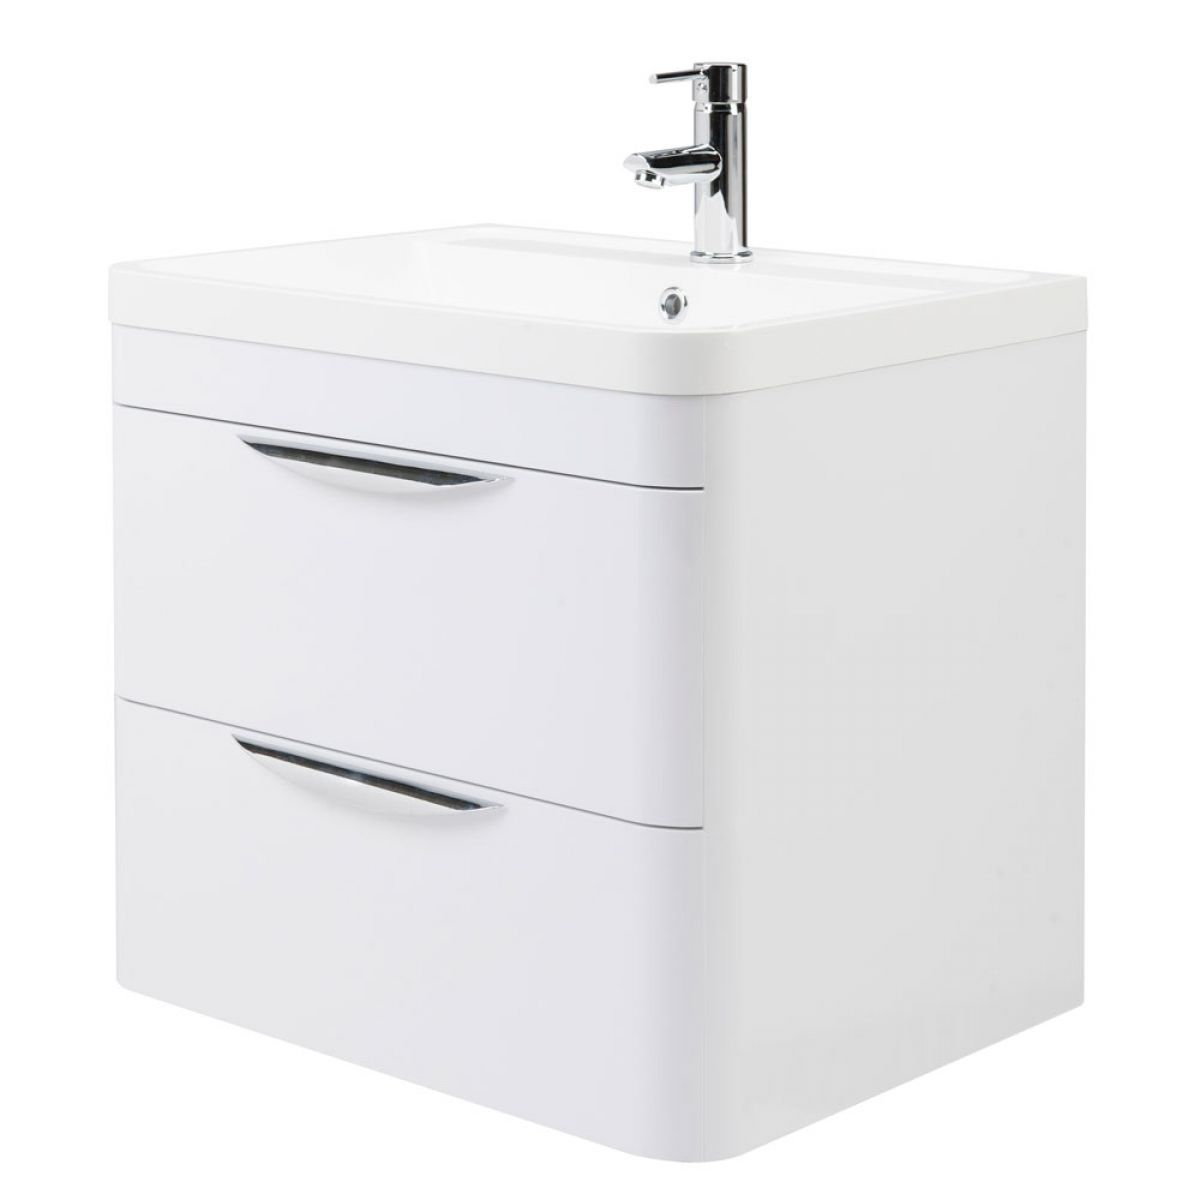 Nuie Parade Gloss White Wall Hung Vanity Unit 600mm